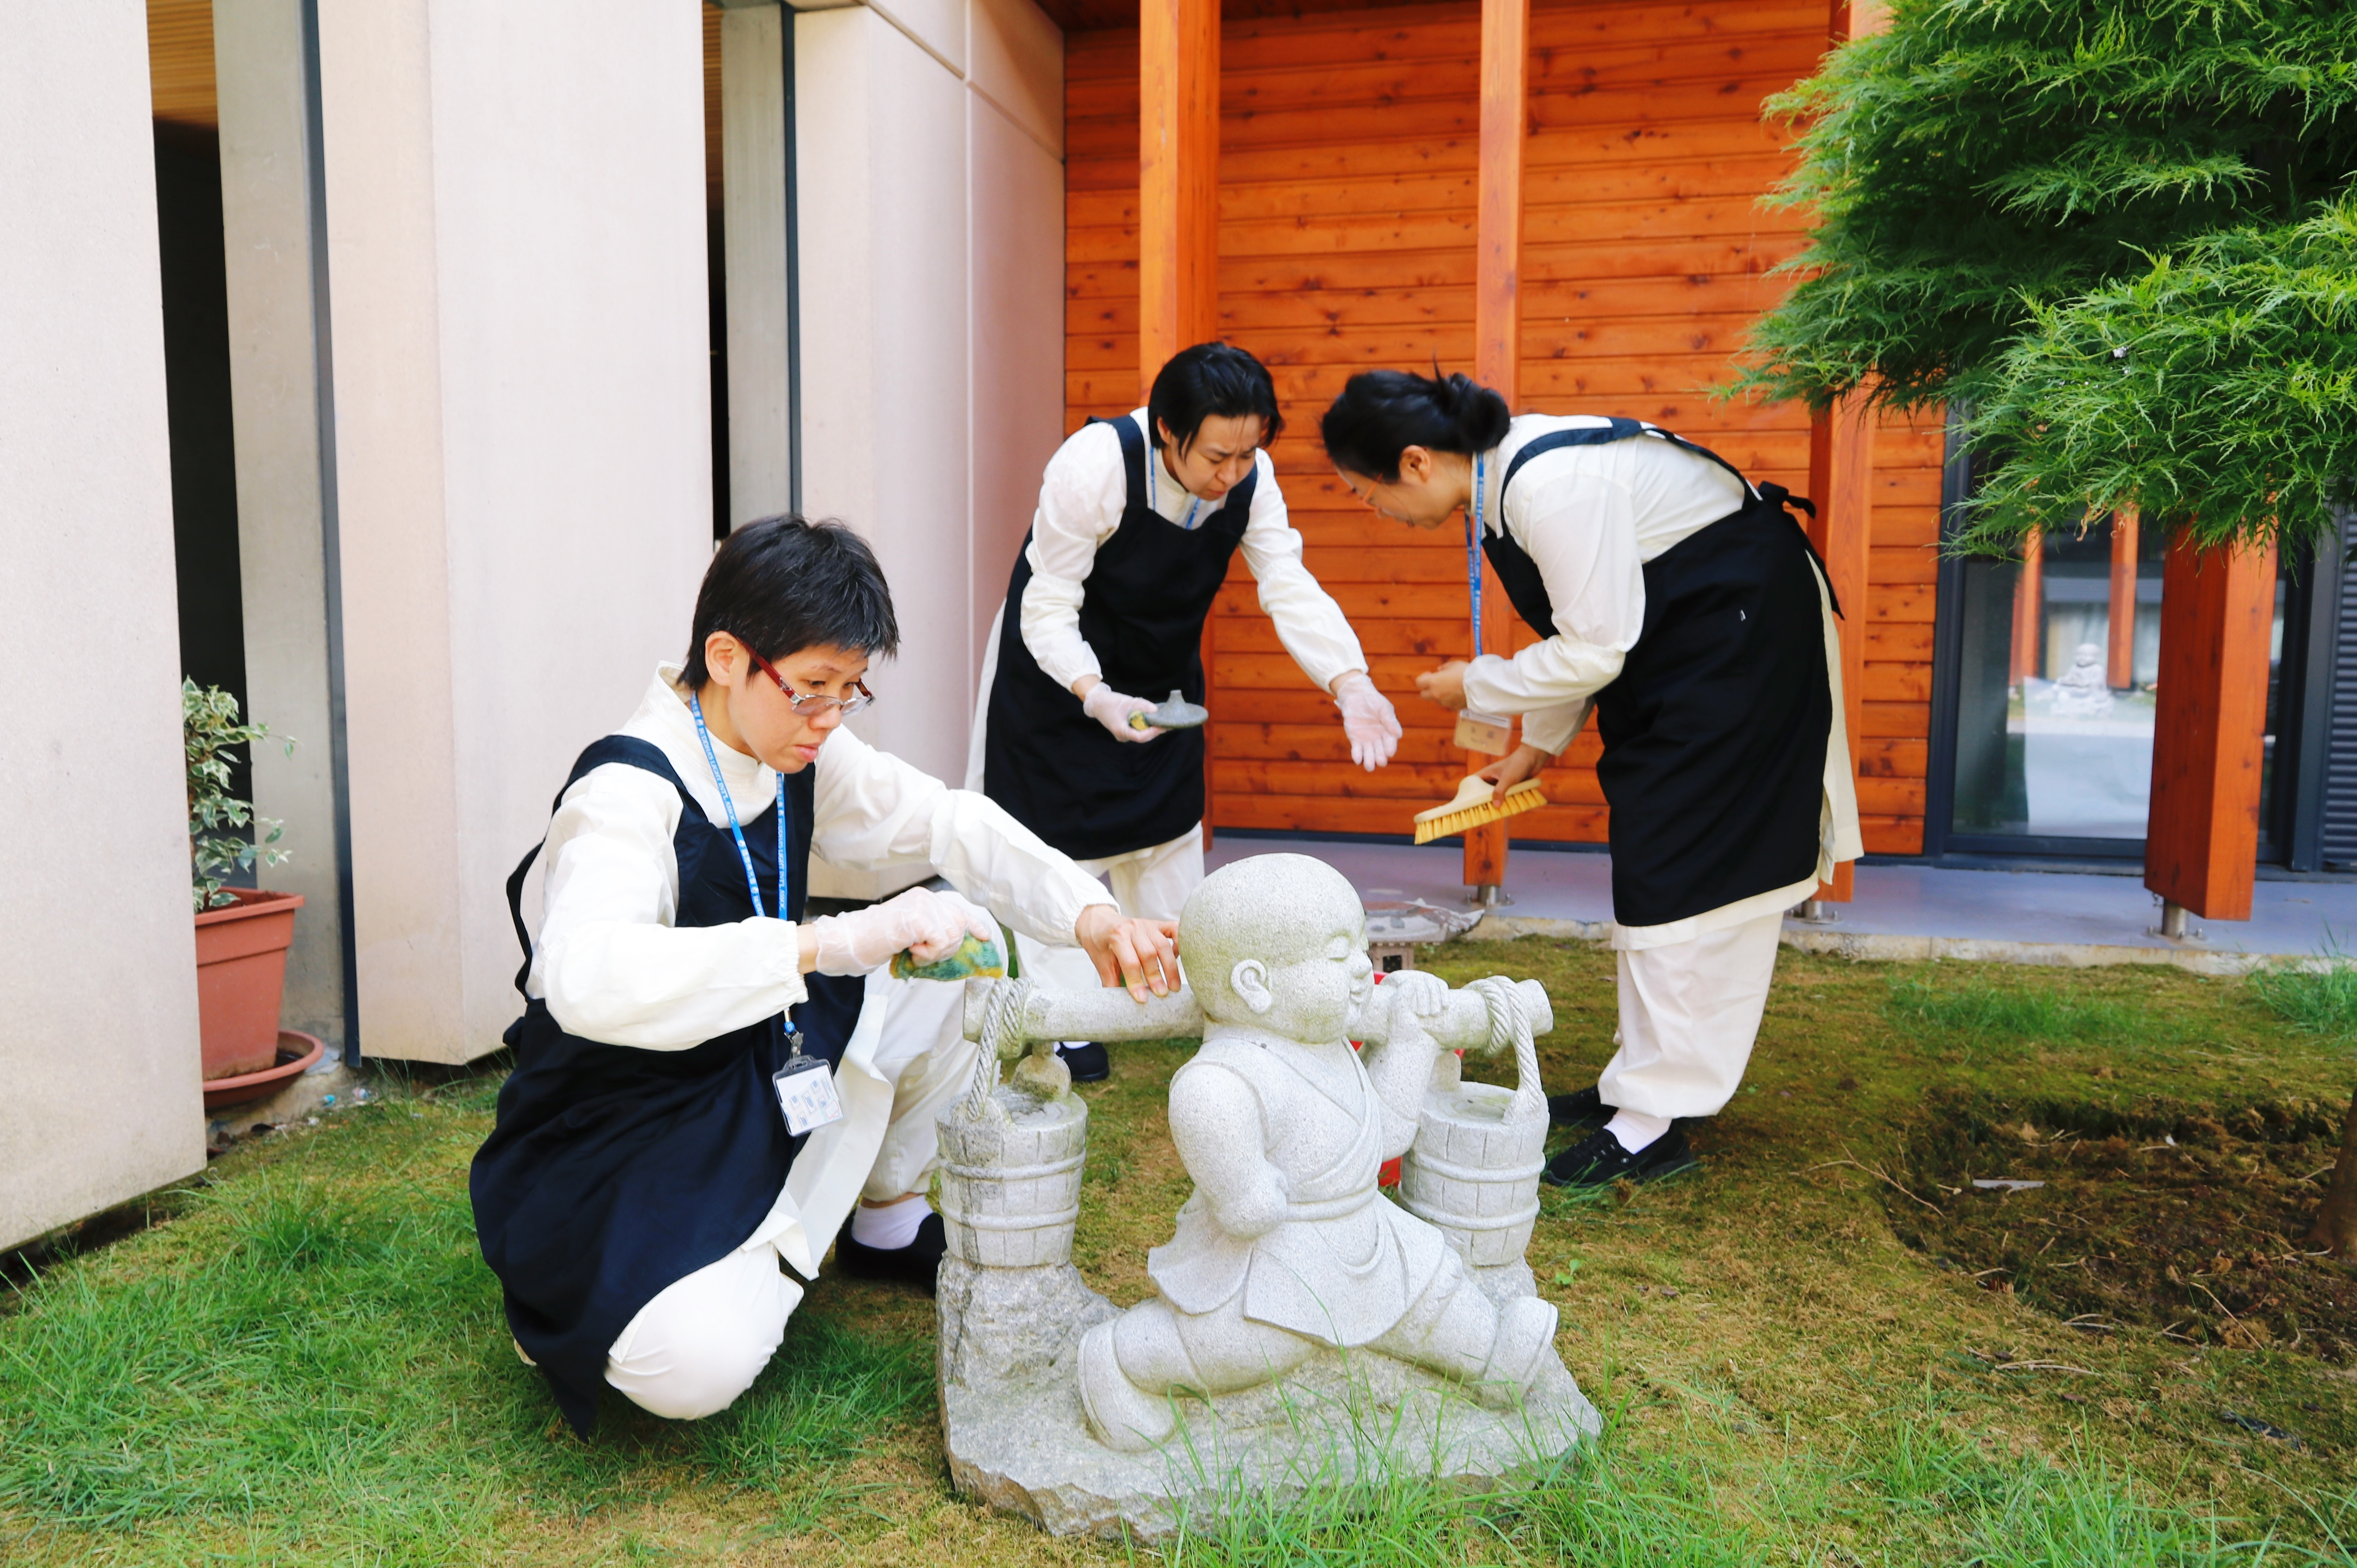 Preceptees carry out chores, carefully cleaning a Buddha statue and other garden ornaments at the Fo Guang Shan European Headquarters, Fahua Temple, Bussy-Saint-Georges, near Paris, 2018. Photo by Life News Agency.